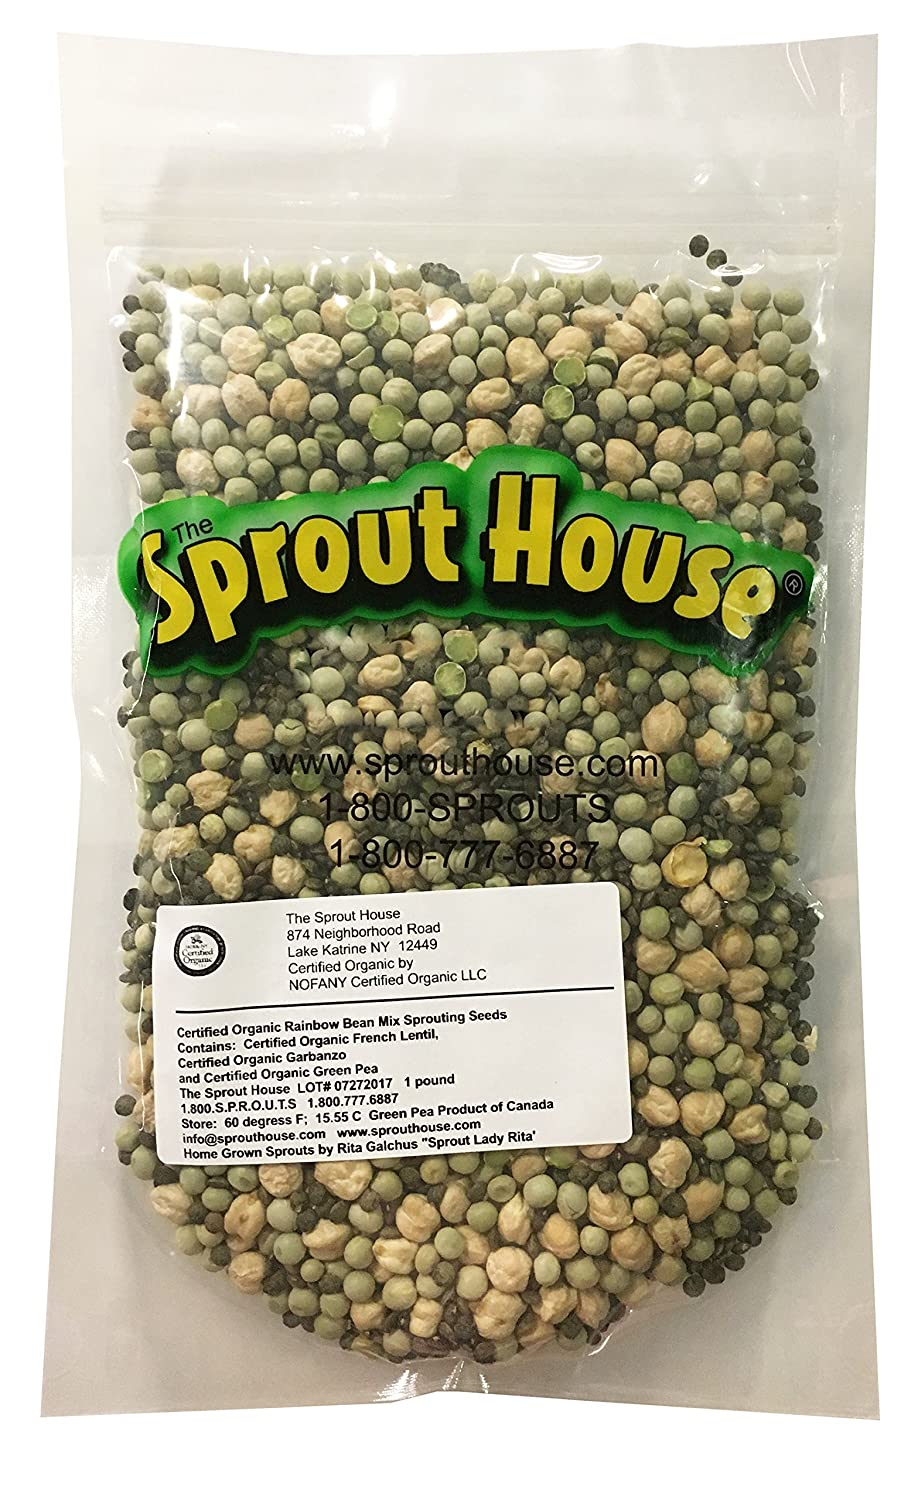 The Sprout House Certified Organic Sprouting Seeds Rainbow Bean Mix Garbanzo, Lentil, Green Pea,1 lb